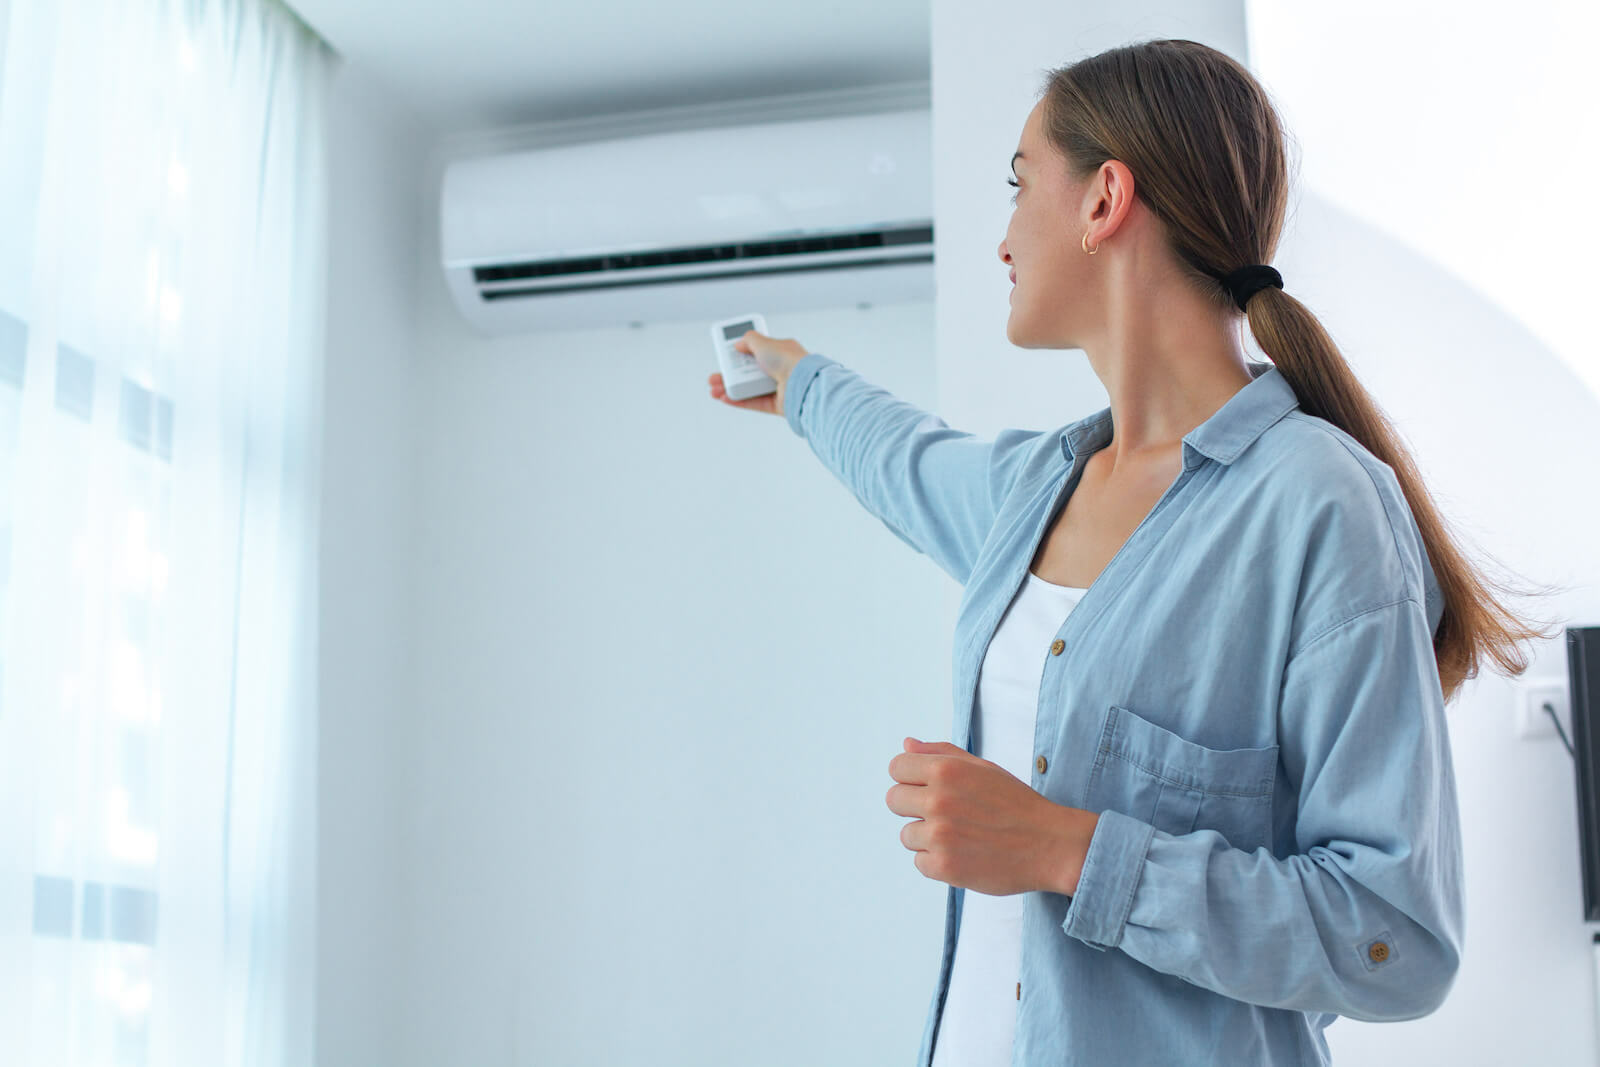 How to cool down: woman adjusting the aircon temperature